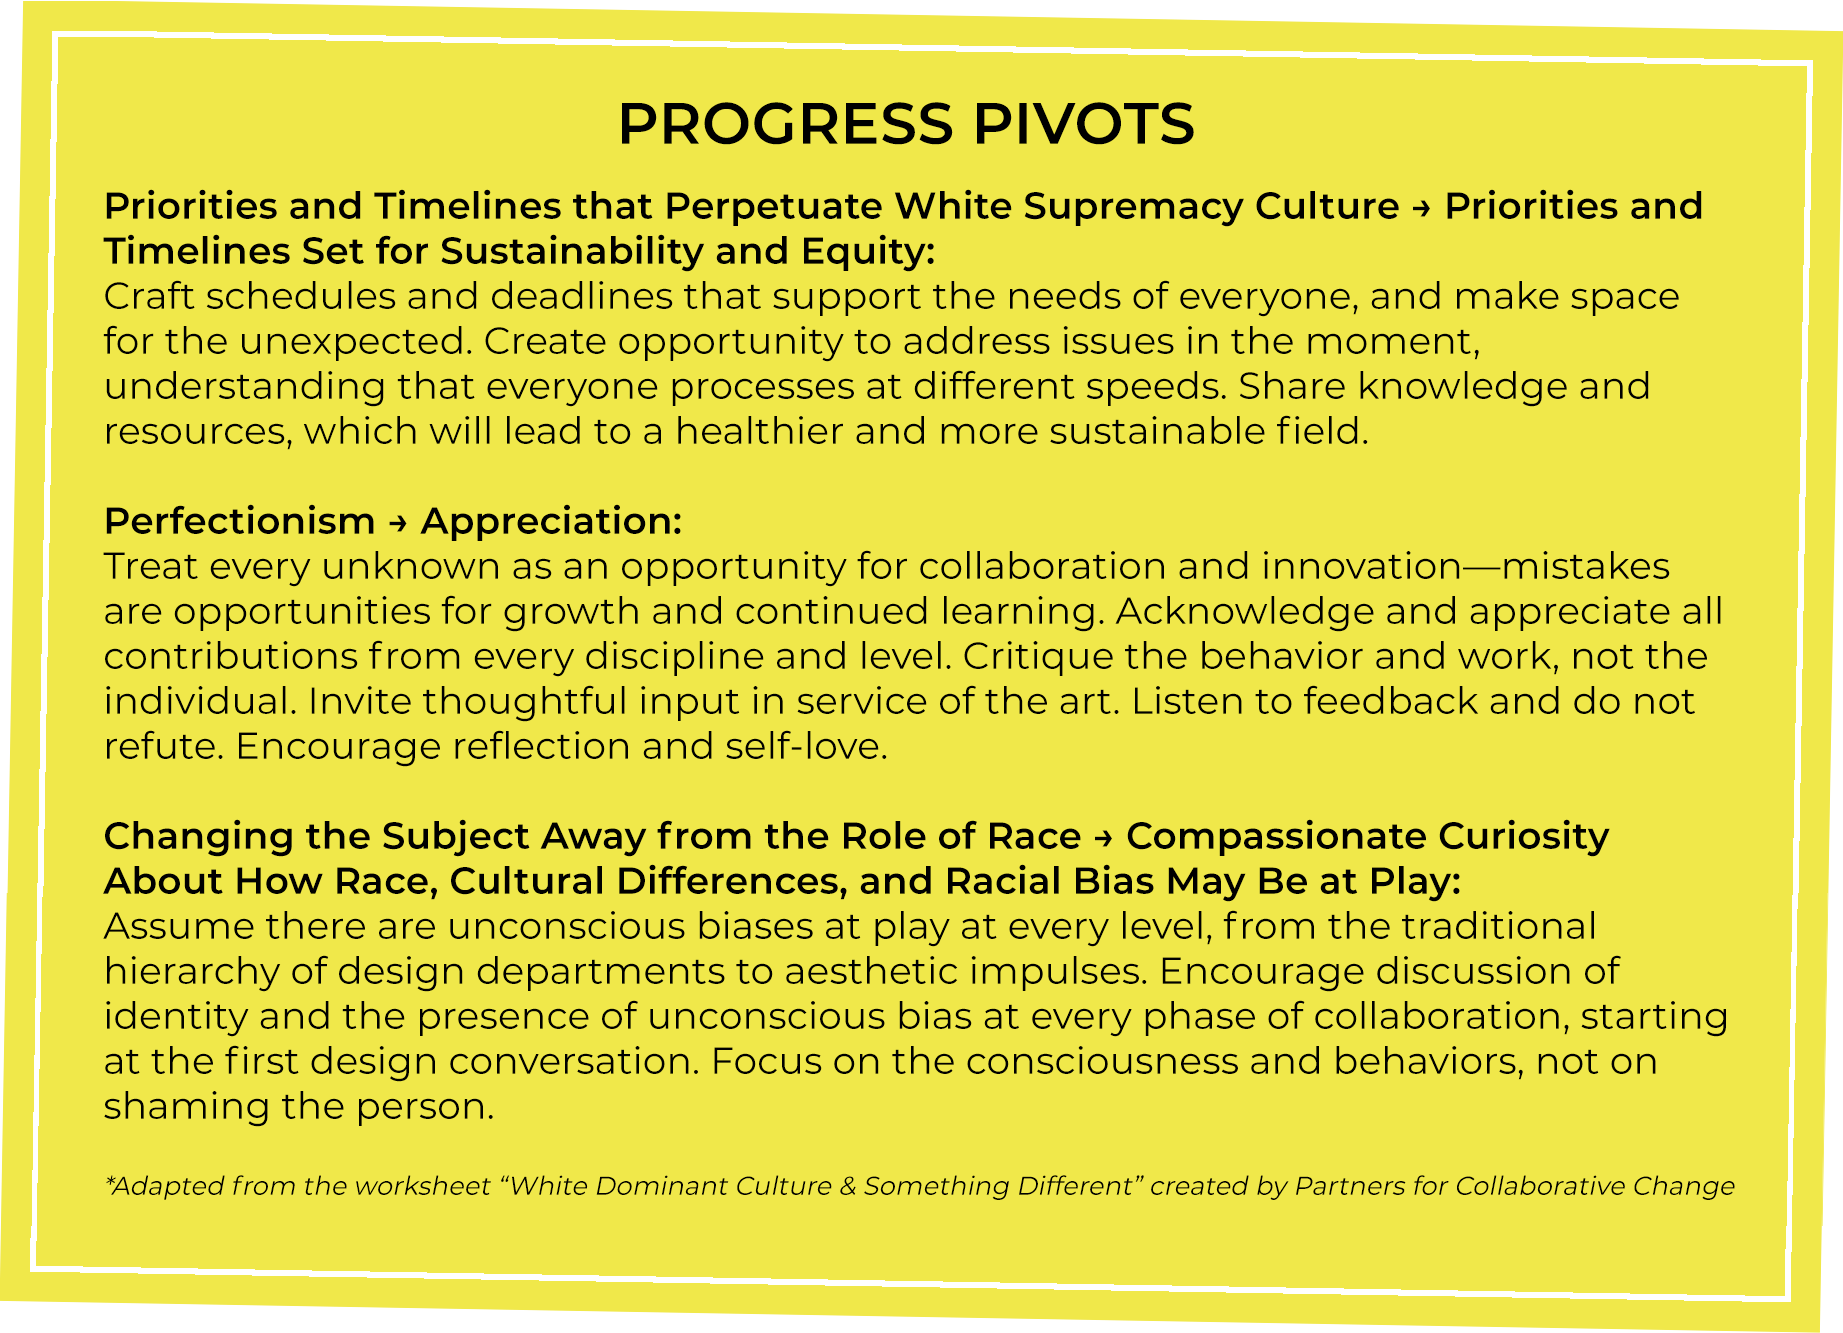 Progress Pivots Priorities and Timelines that Perpetuate White Supremacy Culture > Priorities and timelines set for sustainability and equity Perfectionism > Appreciation Changing the Subject away from the Role of race > Compassionate Curiosity About How Race, Cultural Differences, and Racial Bias May be at Play